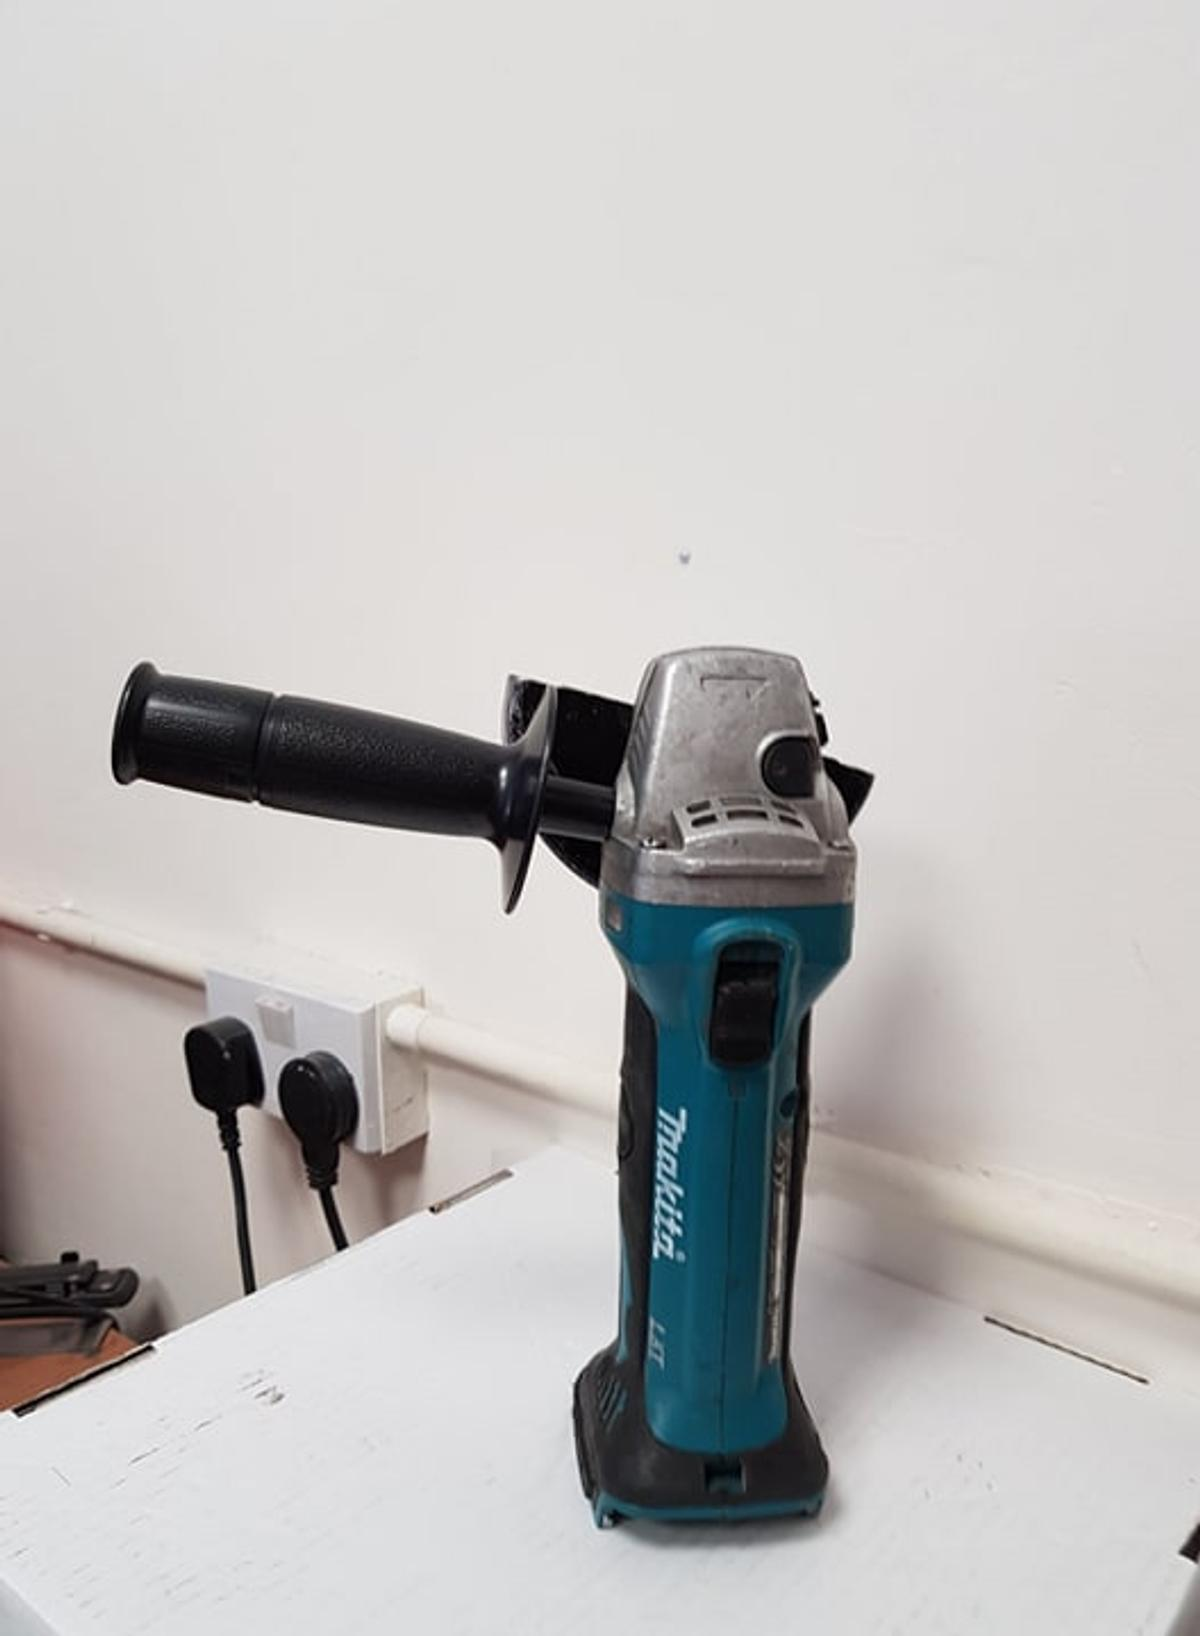 Makita DGA452Z 18V LXT Cordless Angle Grinder With Case /& 5 x Metal Cutting Disc